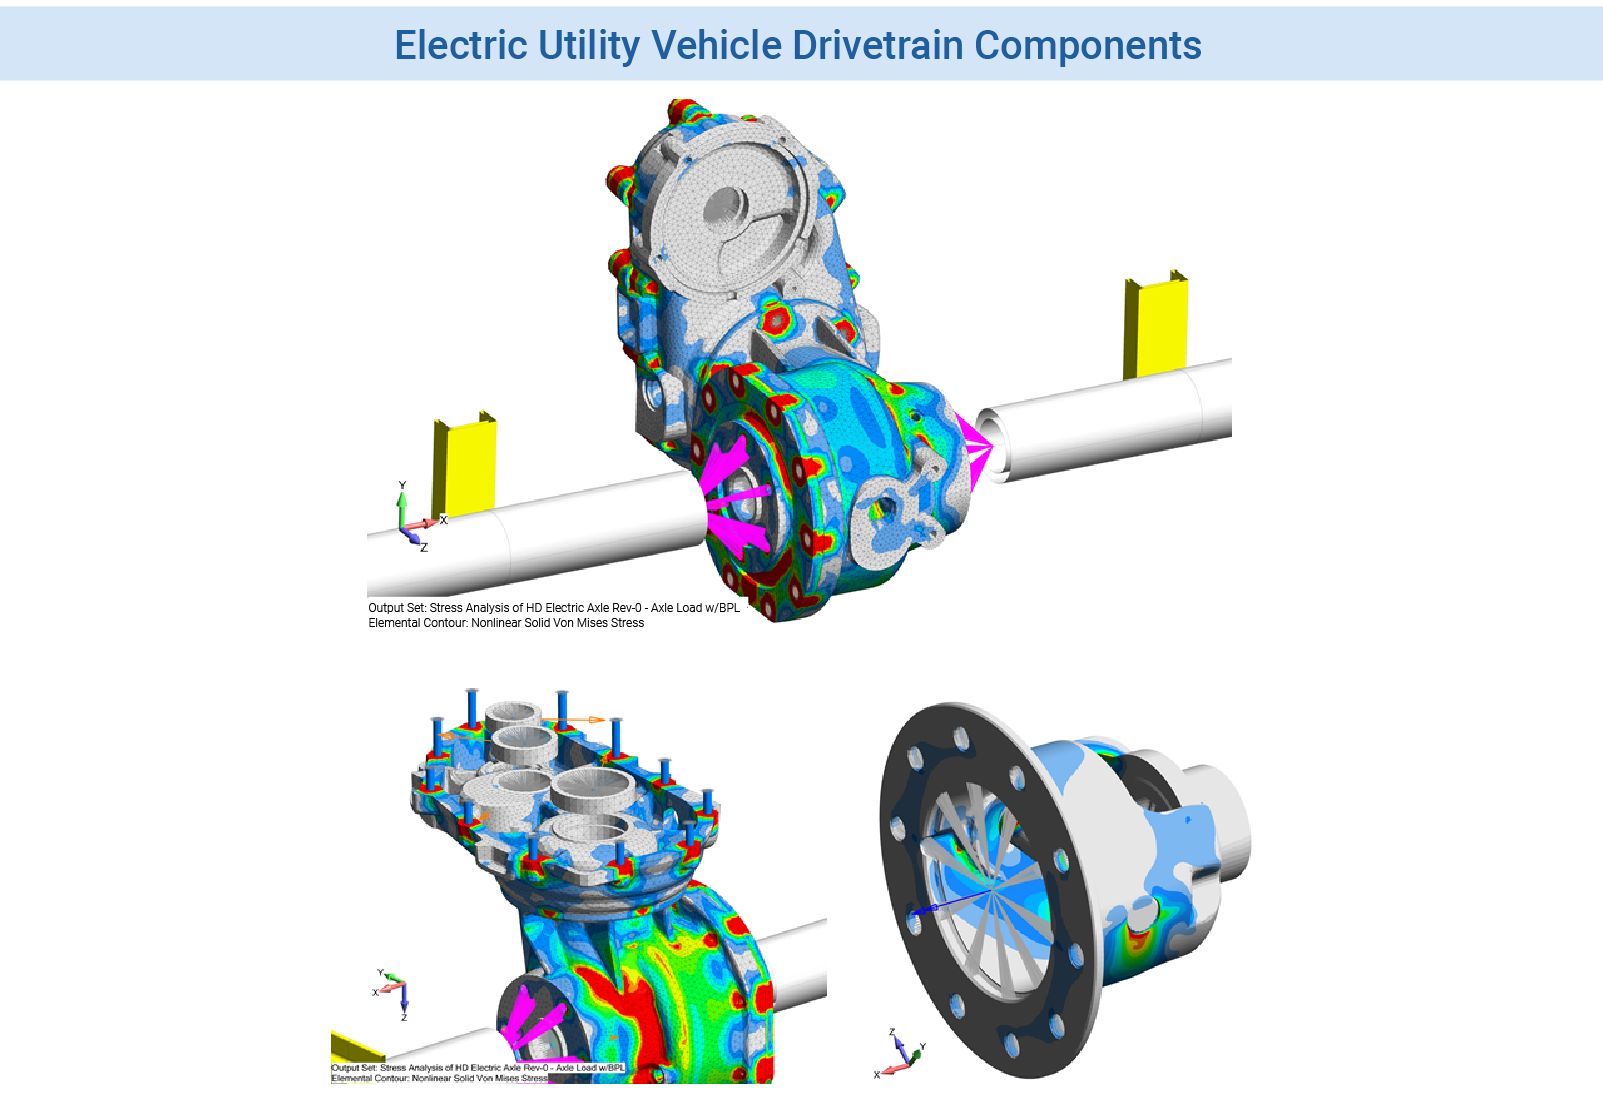 FEA Consulting Services - Stress and fatigue analysis gearbox and drivetrain components for a light-weight electric utility vehicle.  The FEMAP model was analyzed using NX Nastran SOL 601 (ADINA).